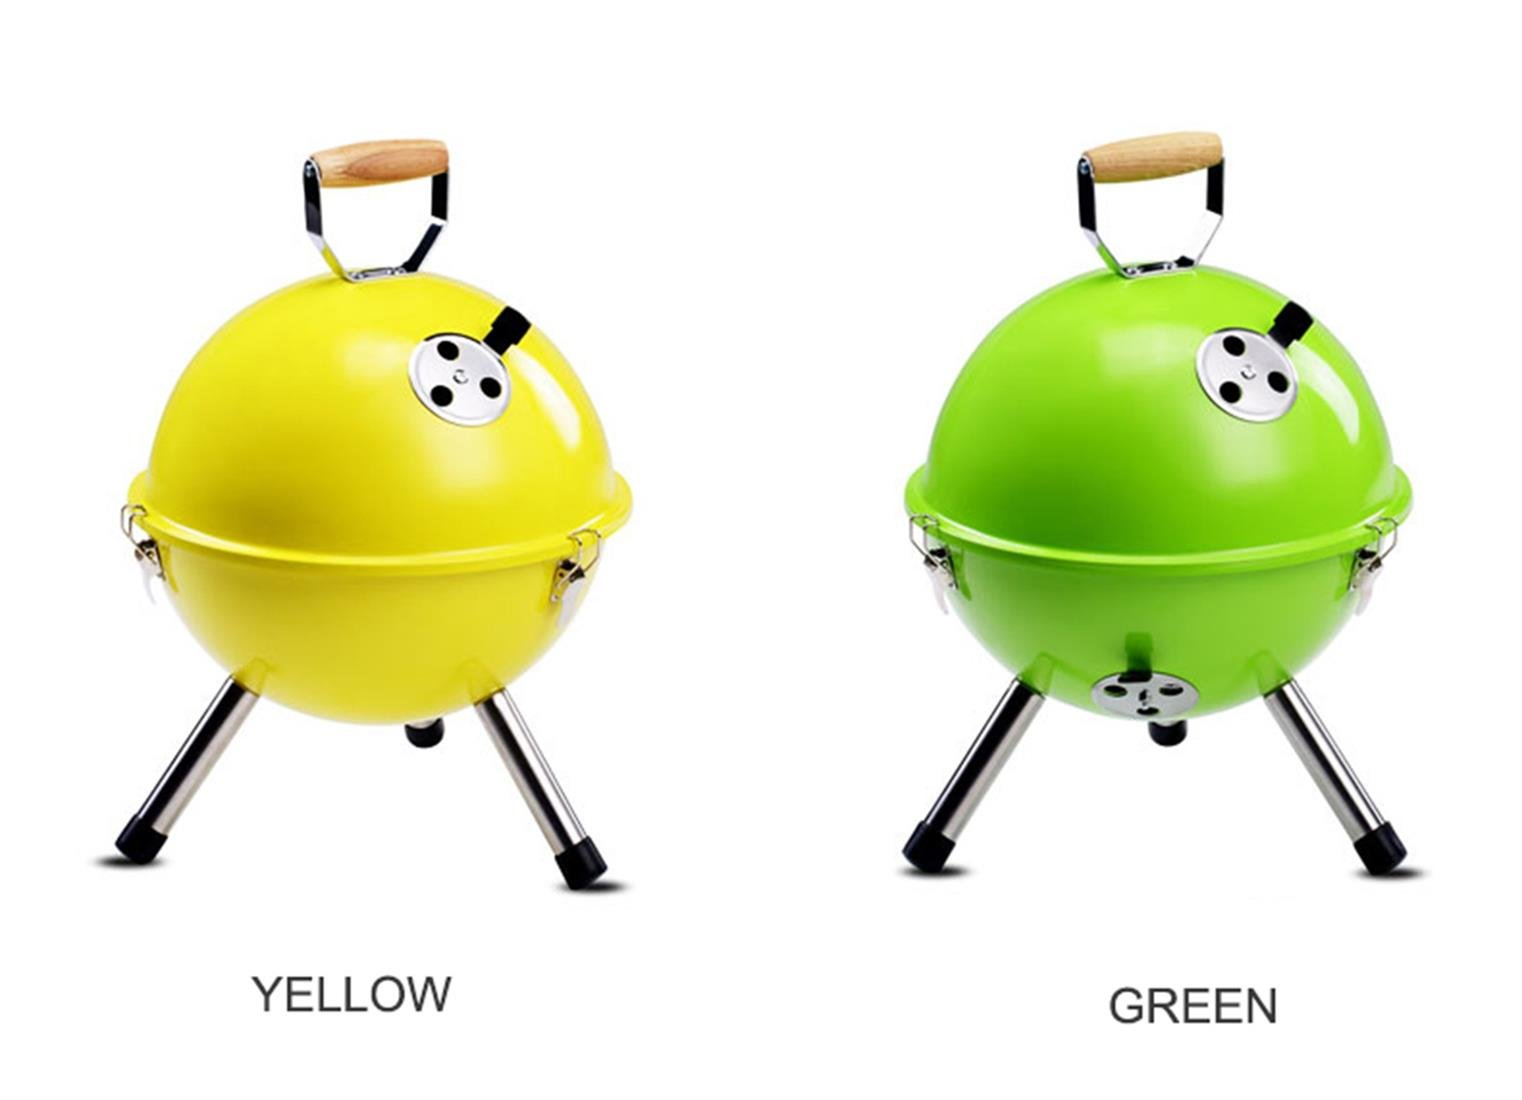 QueenA 17 Inches Smokeless Outdoor Charcoal Grill Mini Round Portable Barbecue Grill Adjustable Temperature Easy Clean BBQ Roast Hibachi Grill for Backyard Hiking Picnic Camping (Yellow)